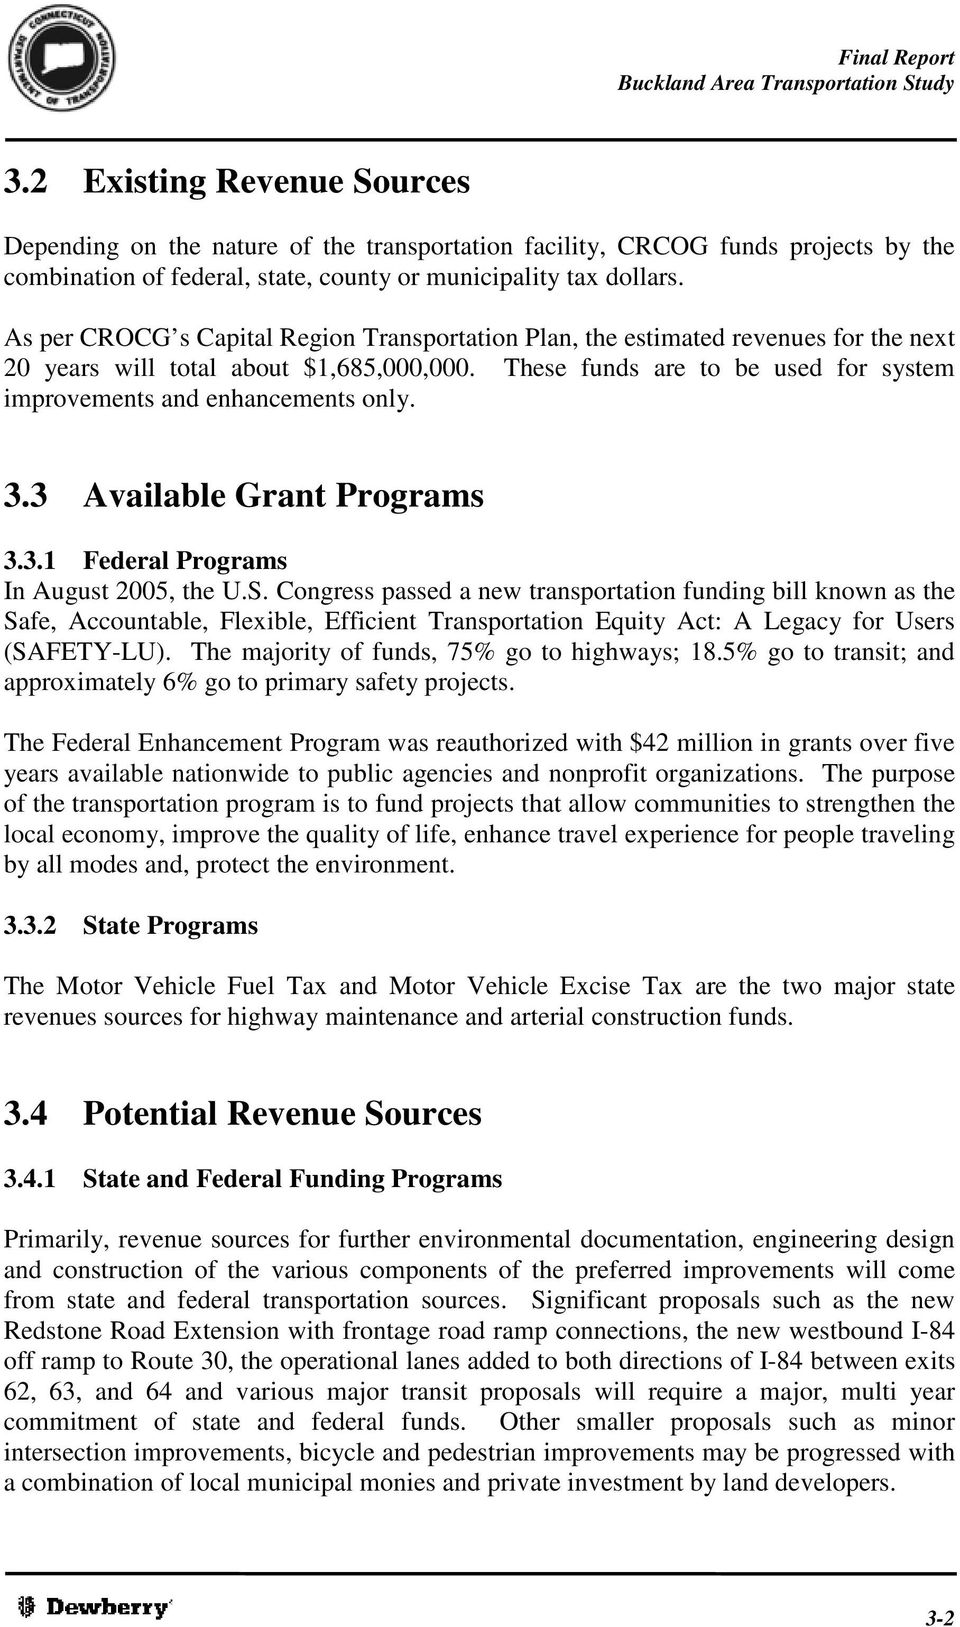 These funds are to be used for system improvements and enhancements only. 3.3 Available Grant Programs 3.3.1 Federal Programs In August 2005, the U.S.